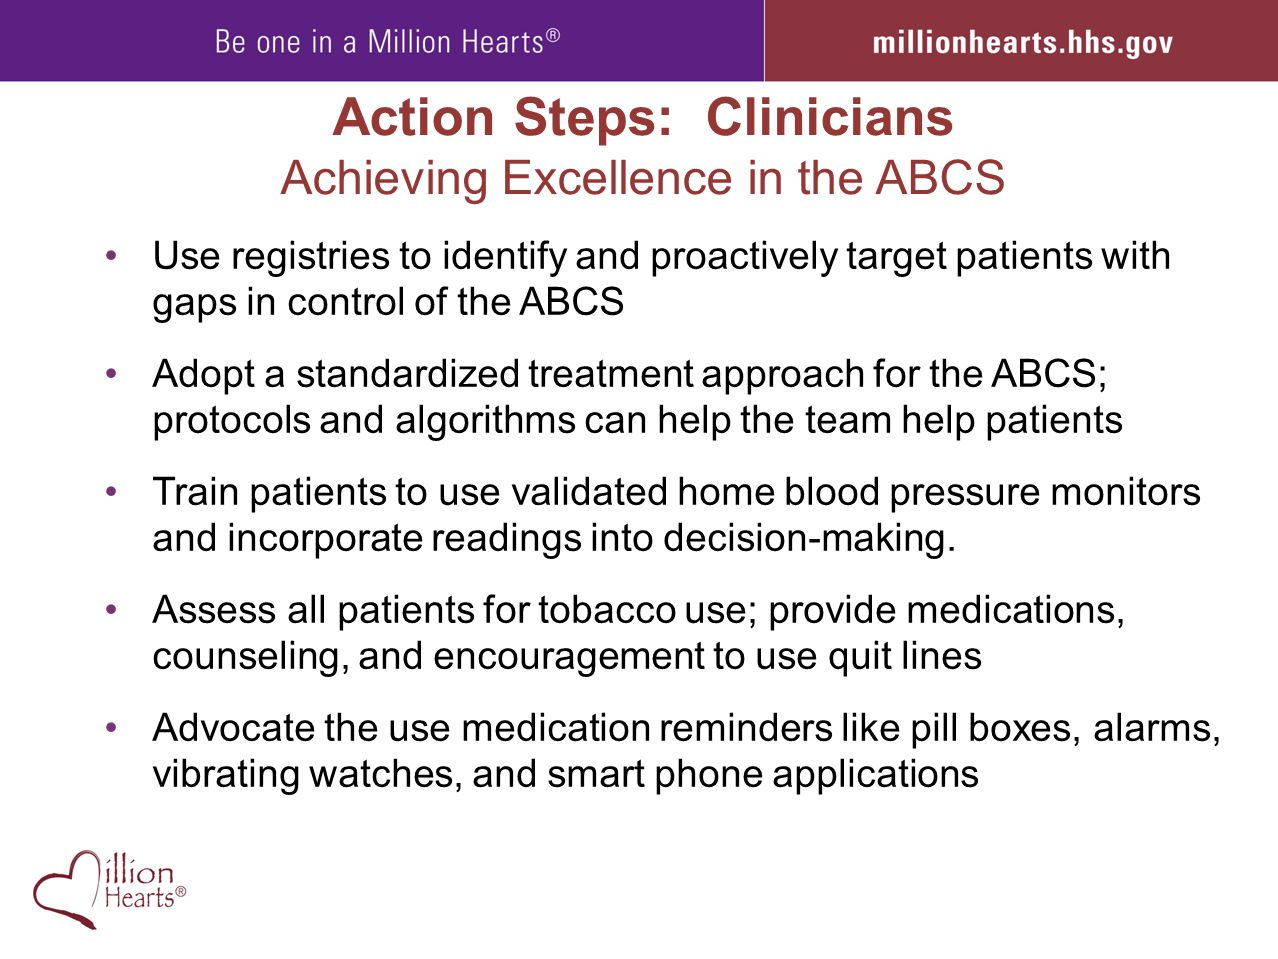 Action Steps: Clinicians Achieving Excellence in the ABCS